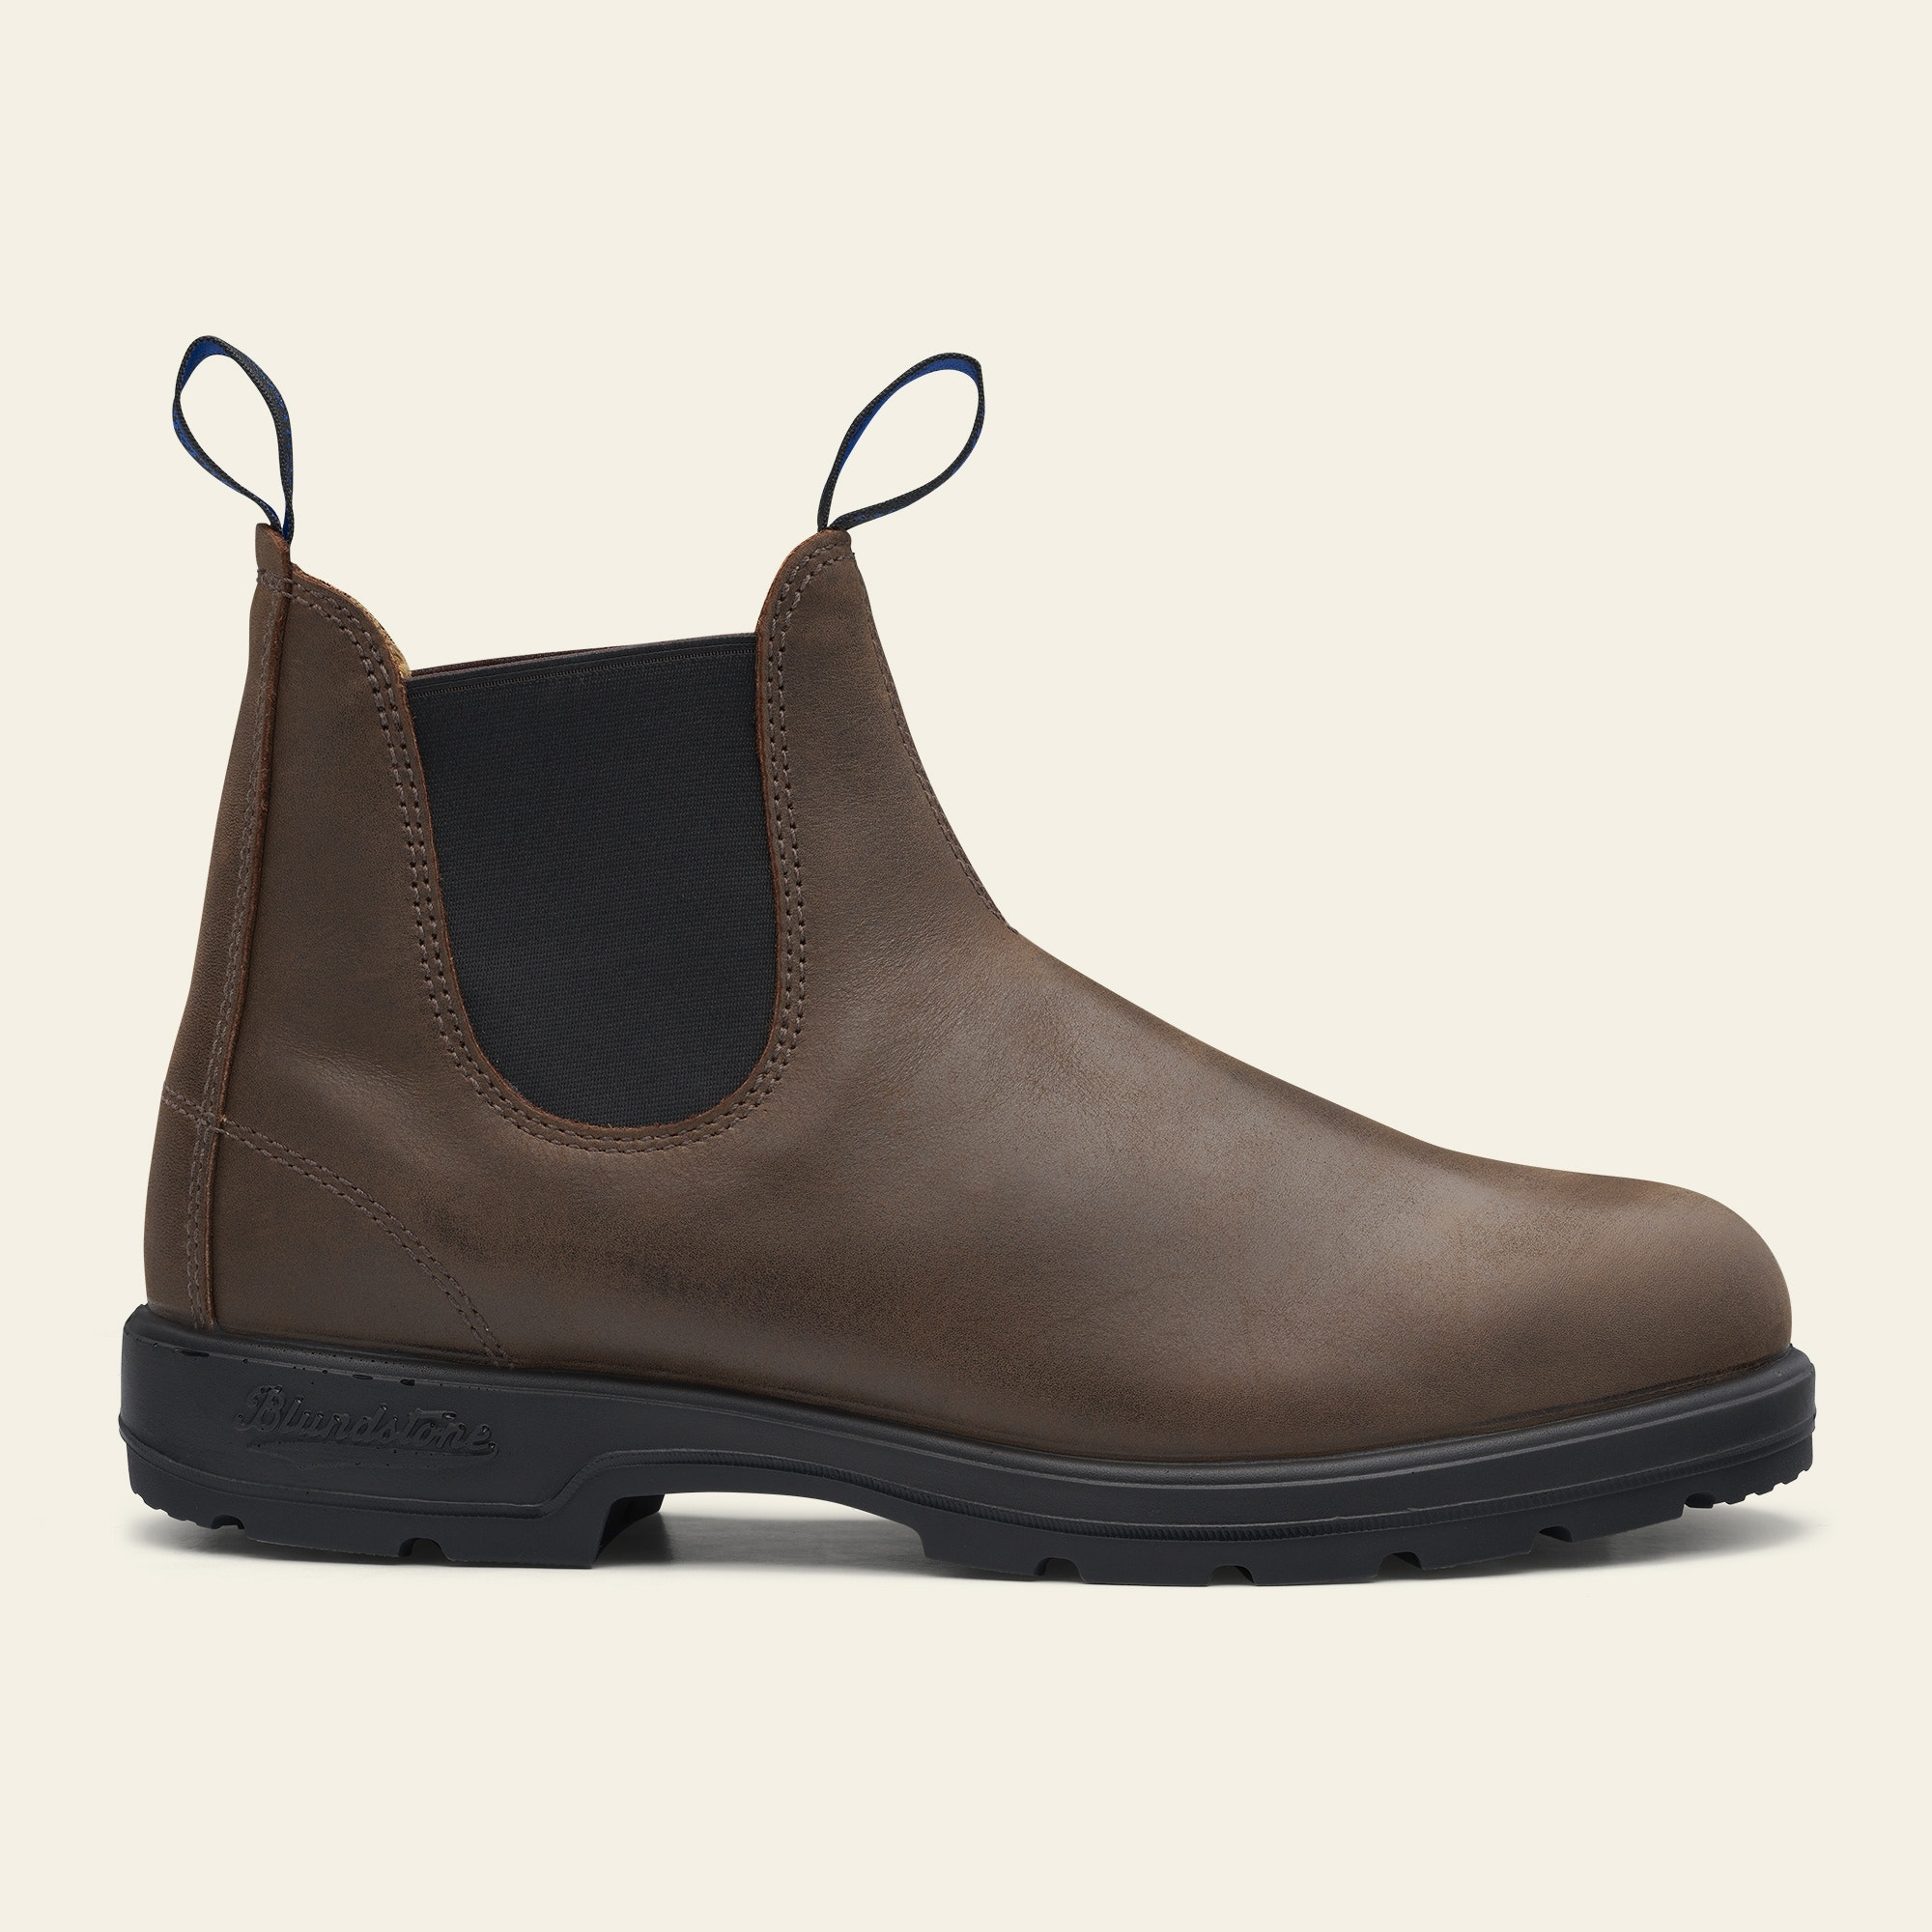 BOTAS BLUNDSTONE 1477 ANTIQUE BROWN